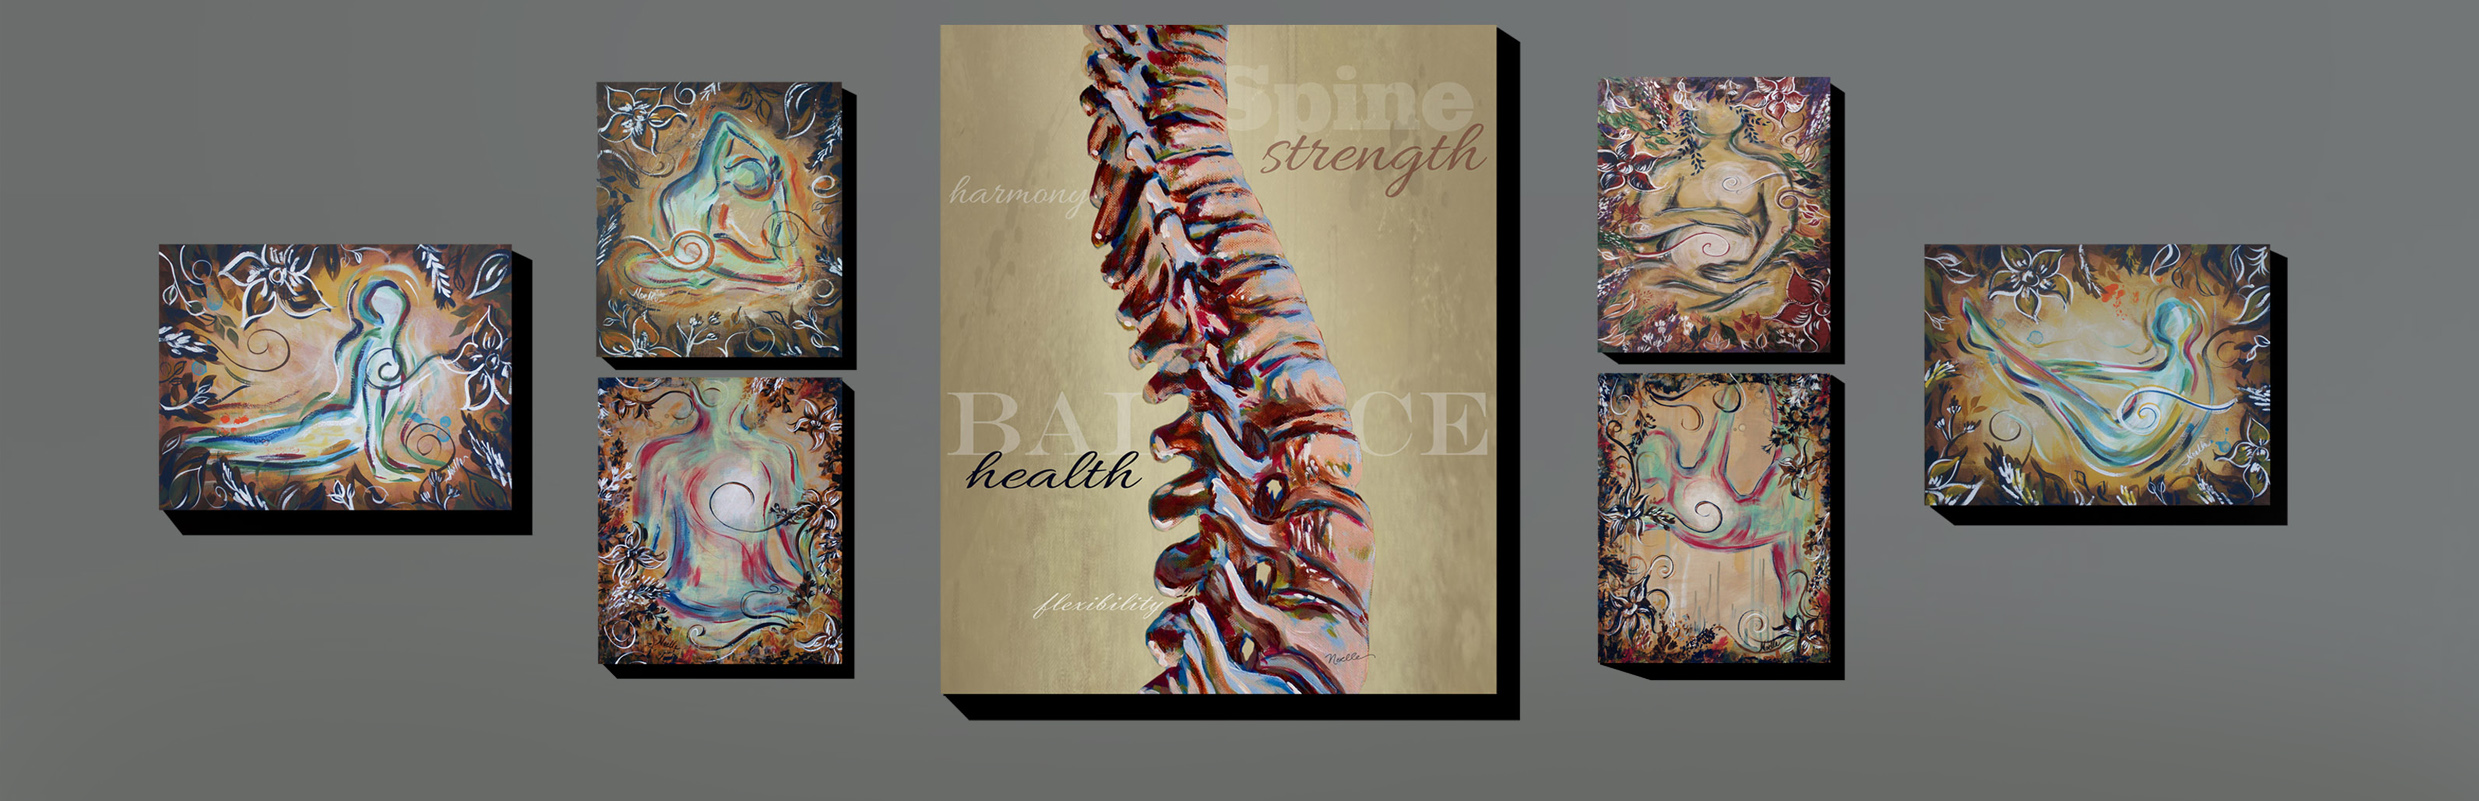 wall art featuring spine and yoga